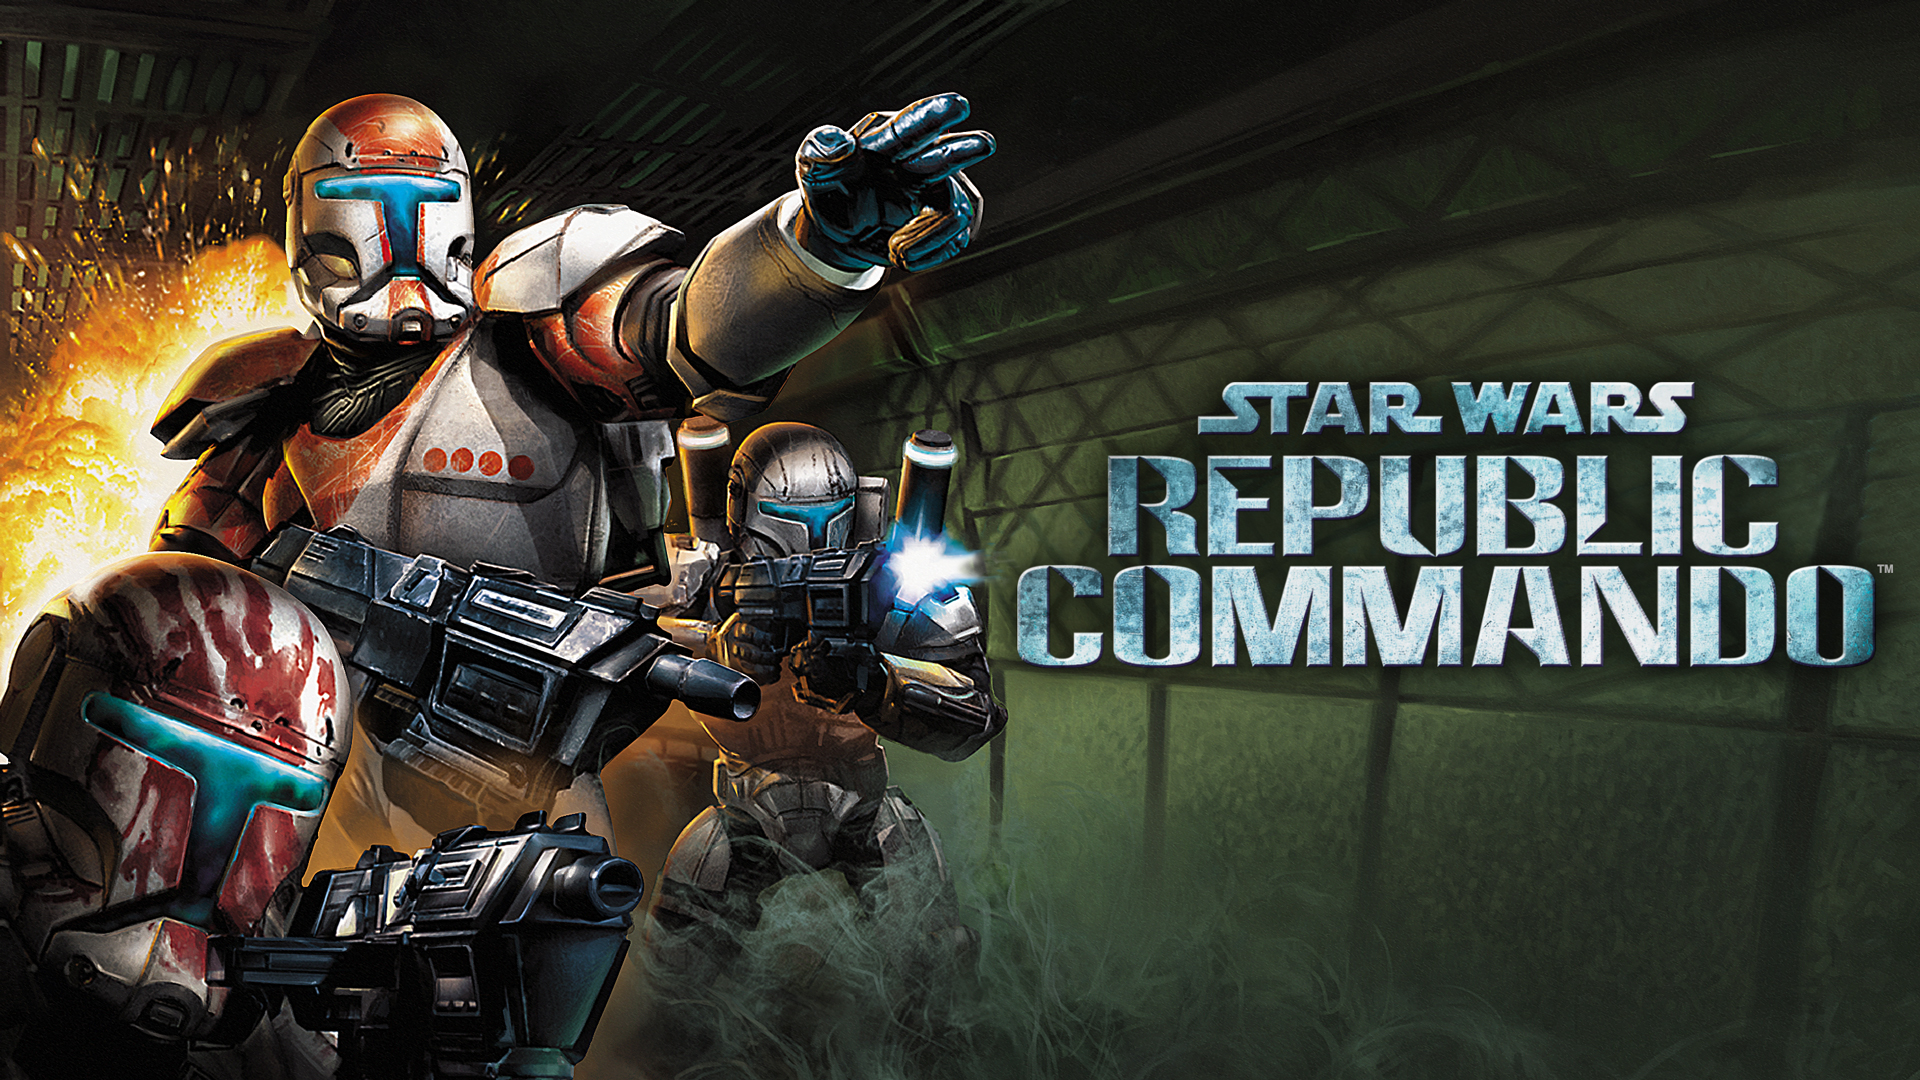 Star Wars: Republic Commando. Gra pojawi się na PlayStation 4 i Nintendo Switch